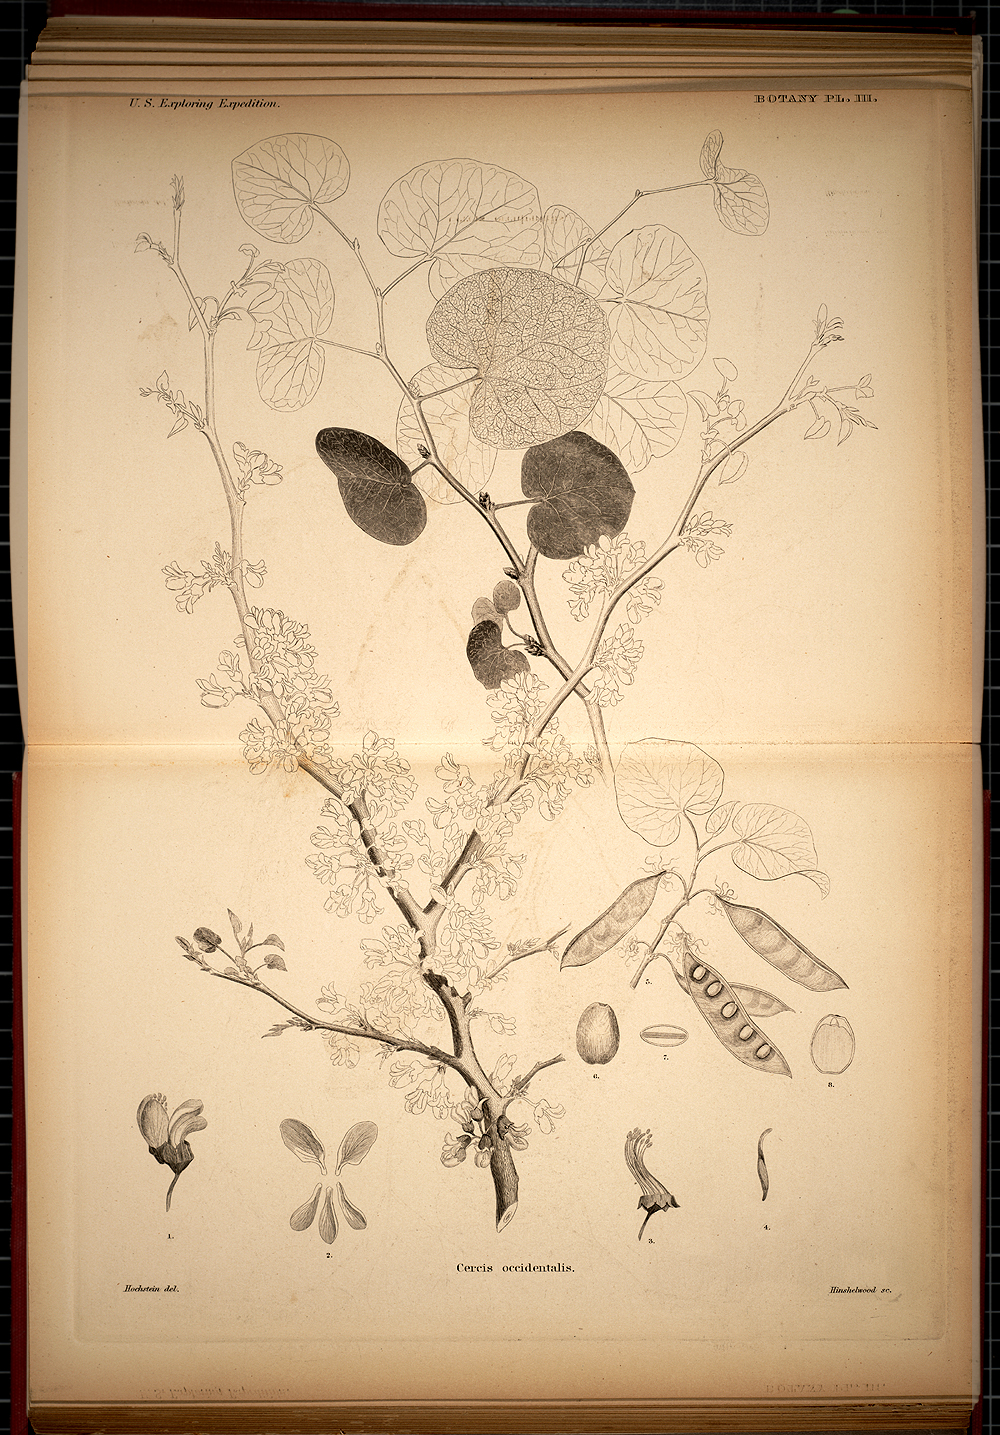 Botany, Plate III,  Image number:SIL19-28-029